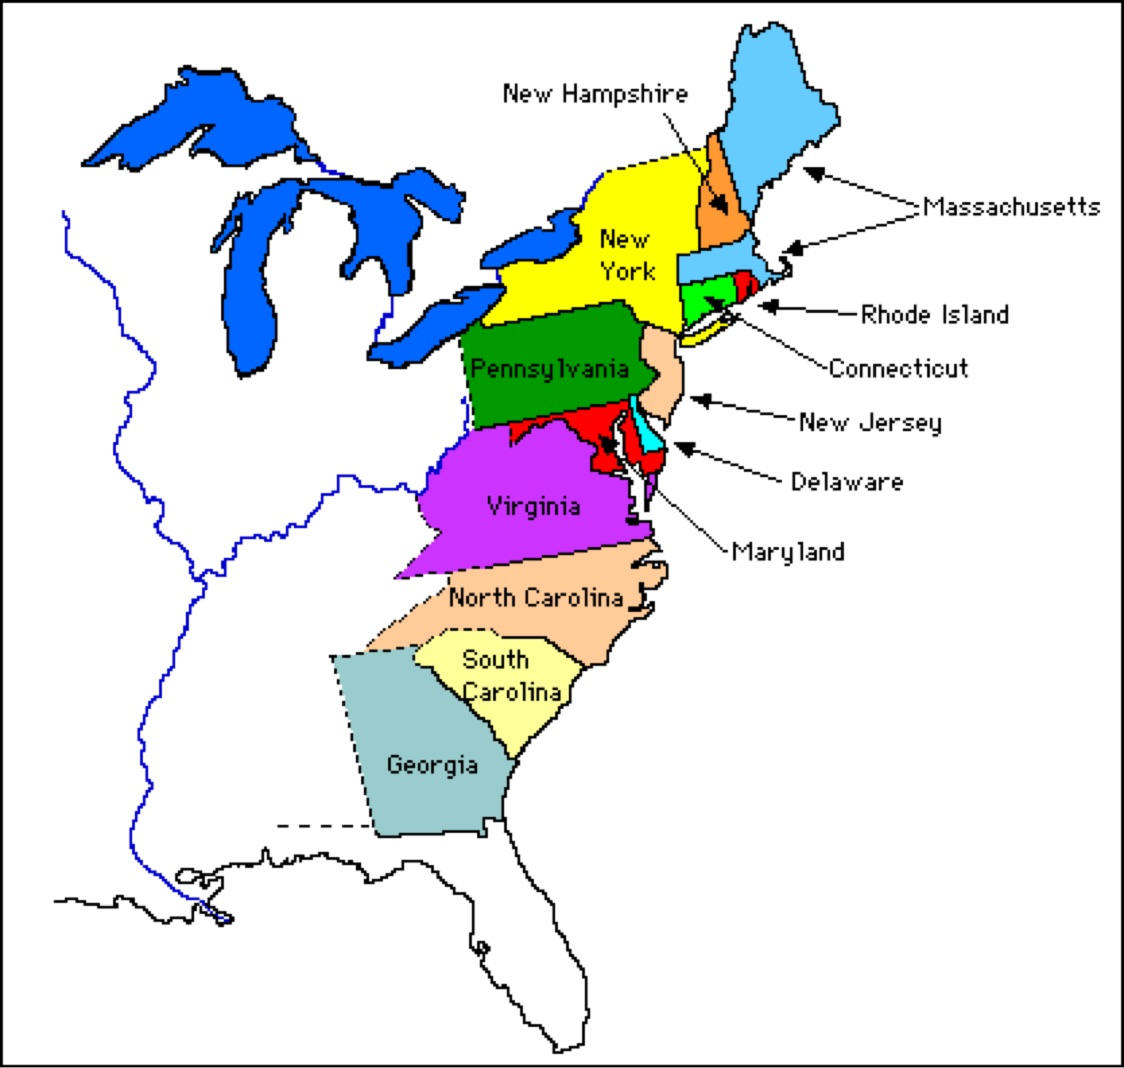 FileThirteen Colonies  Mapfrsvg Wikimedia Commons FileMap - Map 13 original states usa